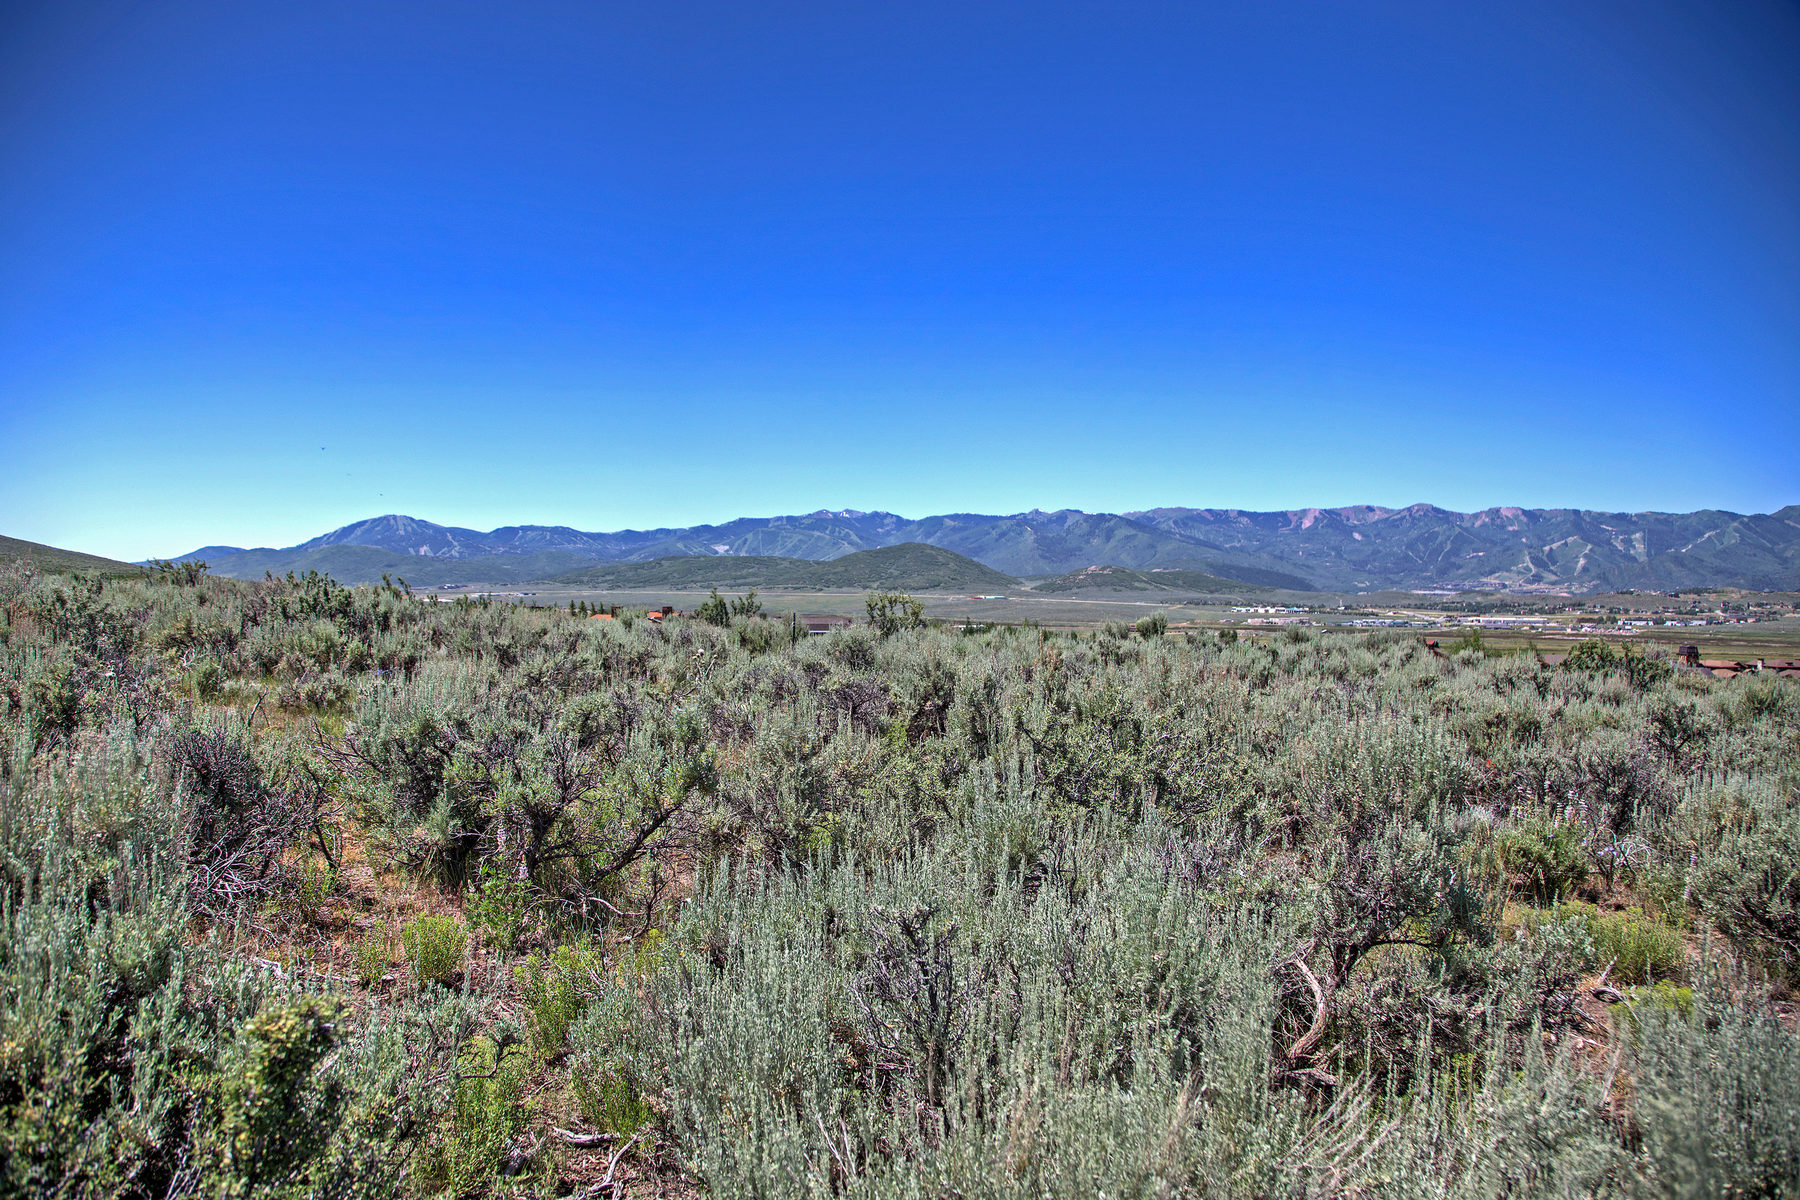 Land for Sale at Promontory View Lot 2766 Bitterbrush Drive Lot 51 Park City, Utah, 84098 United States